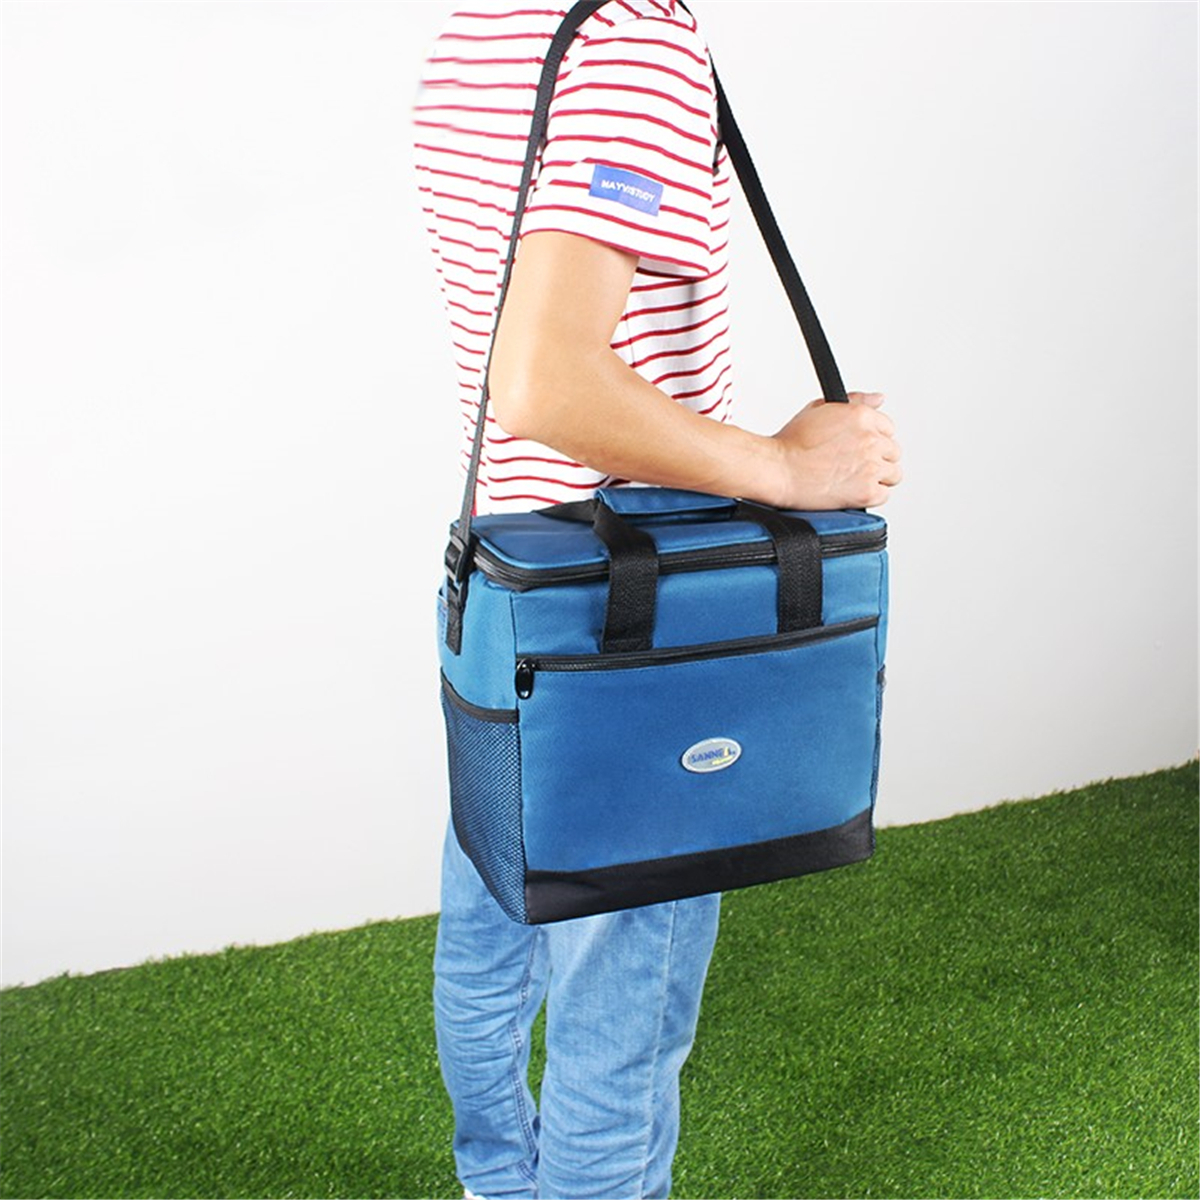 Carry Handbag Waterproof Picnic Case Outdoor About Storage Bag Details Insulated Cooler Lunch H29IEDYW